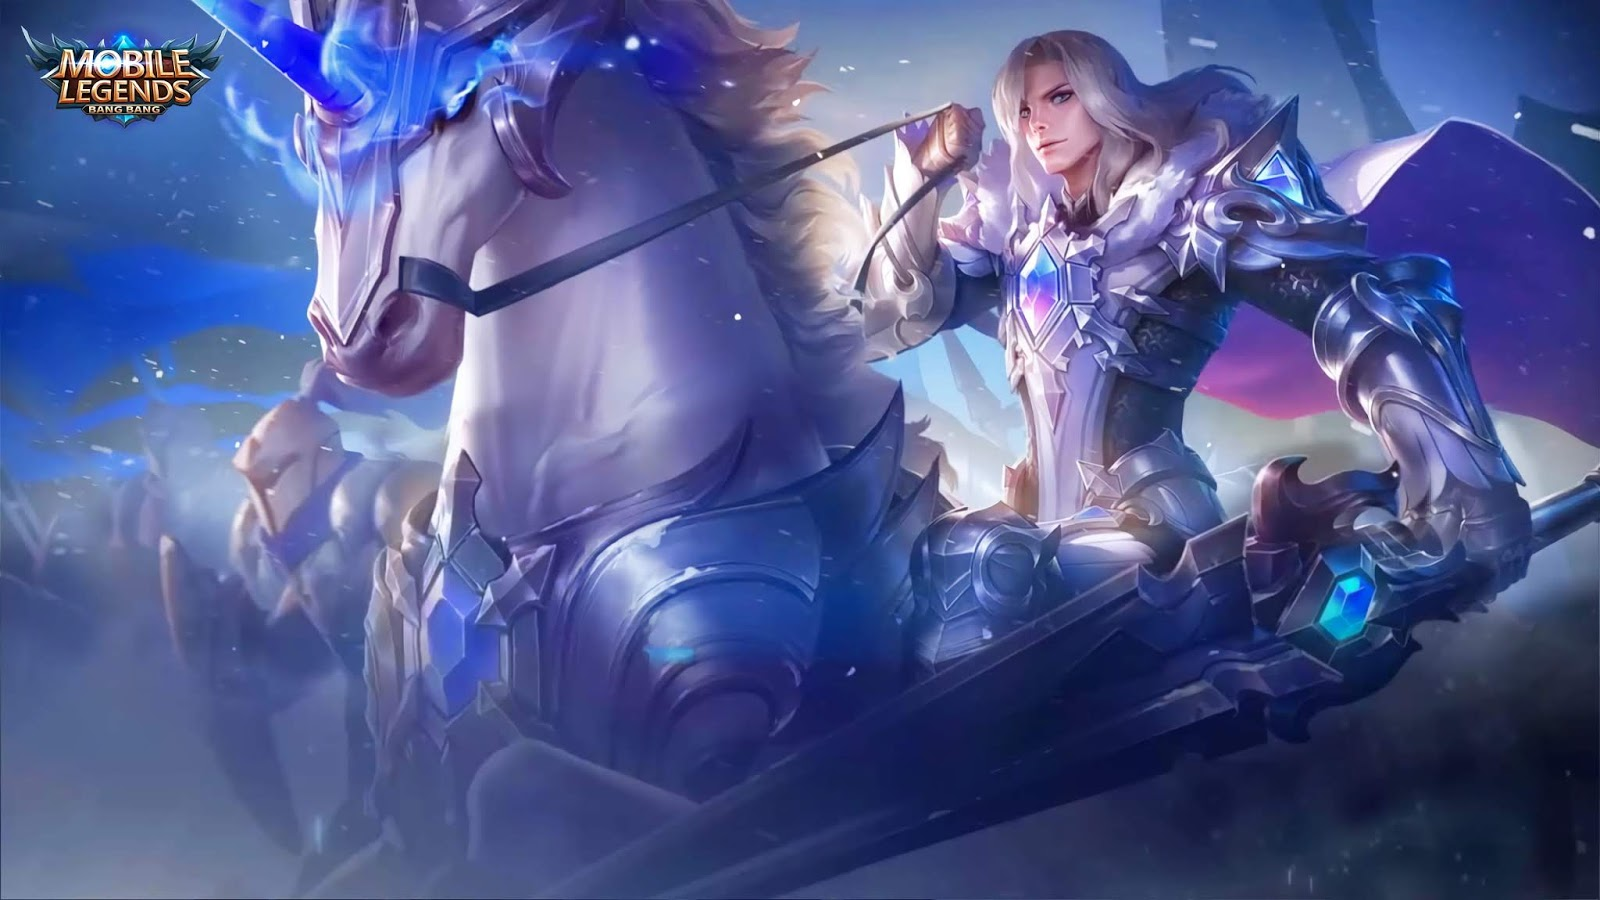 Wallpaper Leomord Frostborn Paladin Skin Mobile Legends Full HD for PC